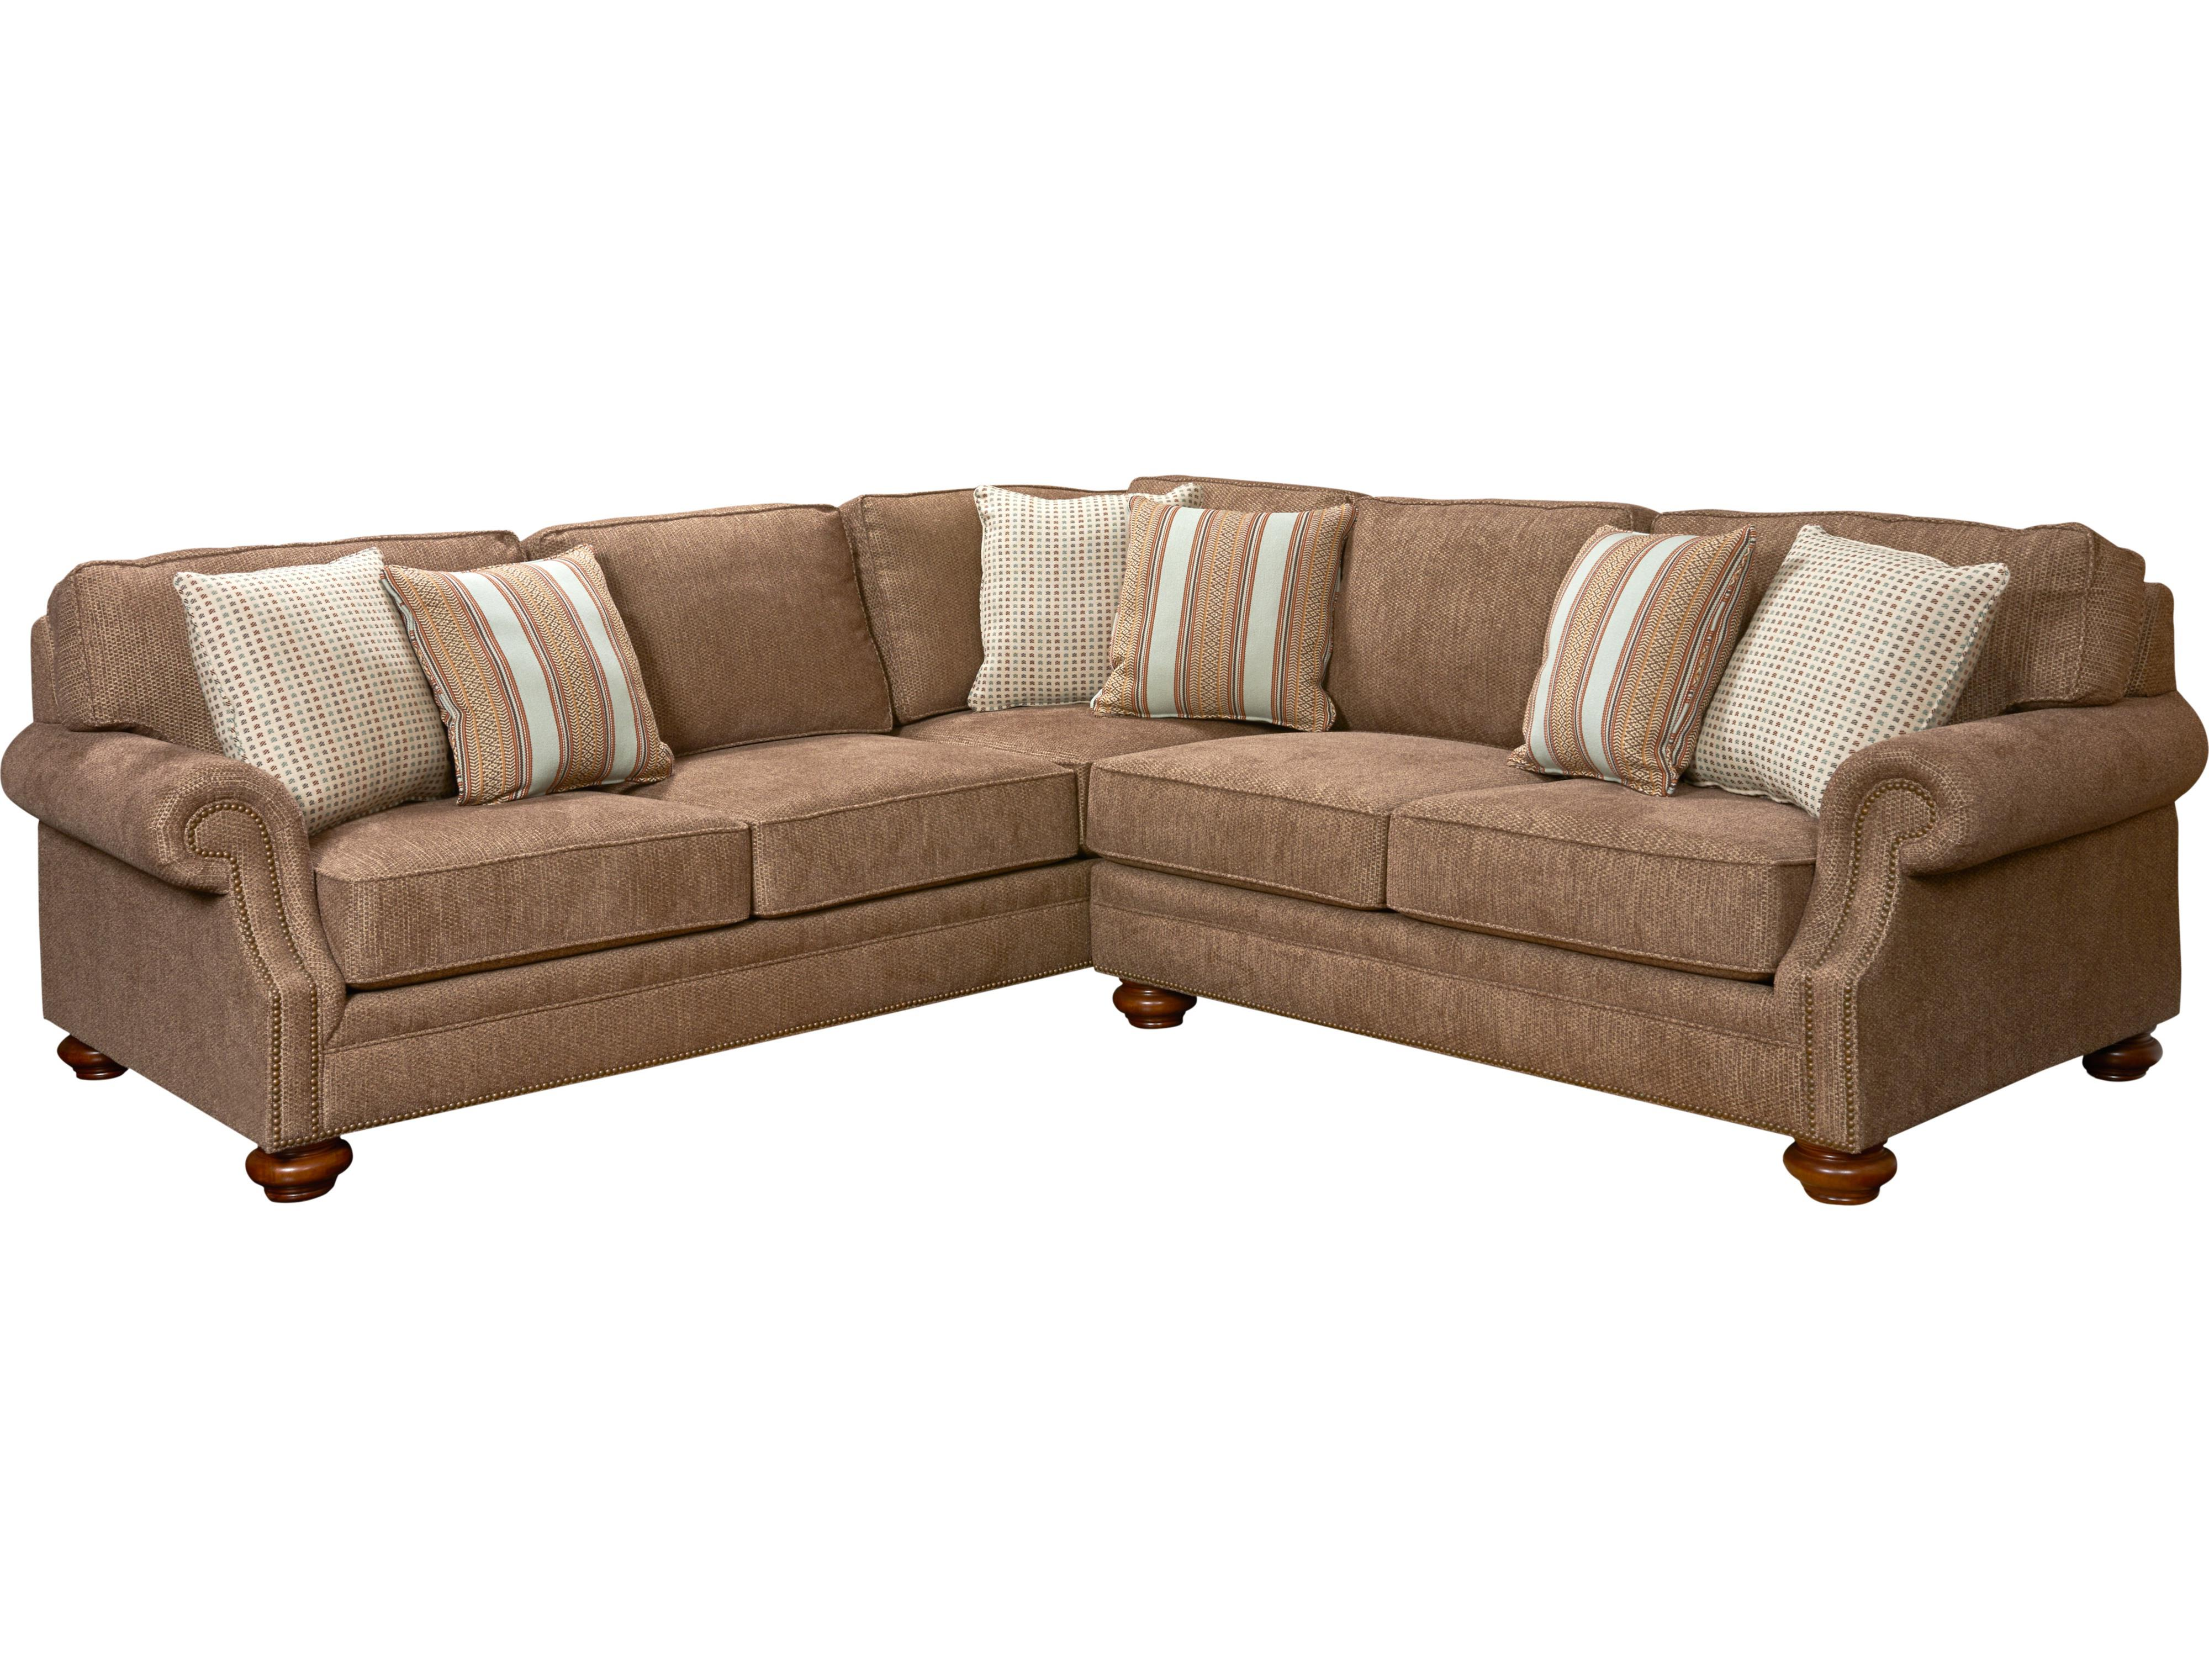 Broyhill Furniture Heuer Traditional Sectional Sofa With Nail Head Trim John V Schultz